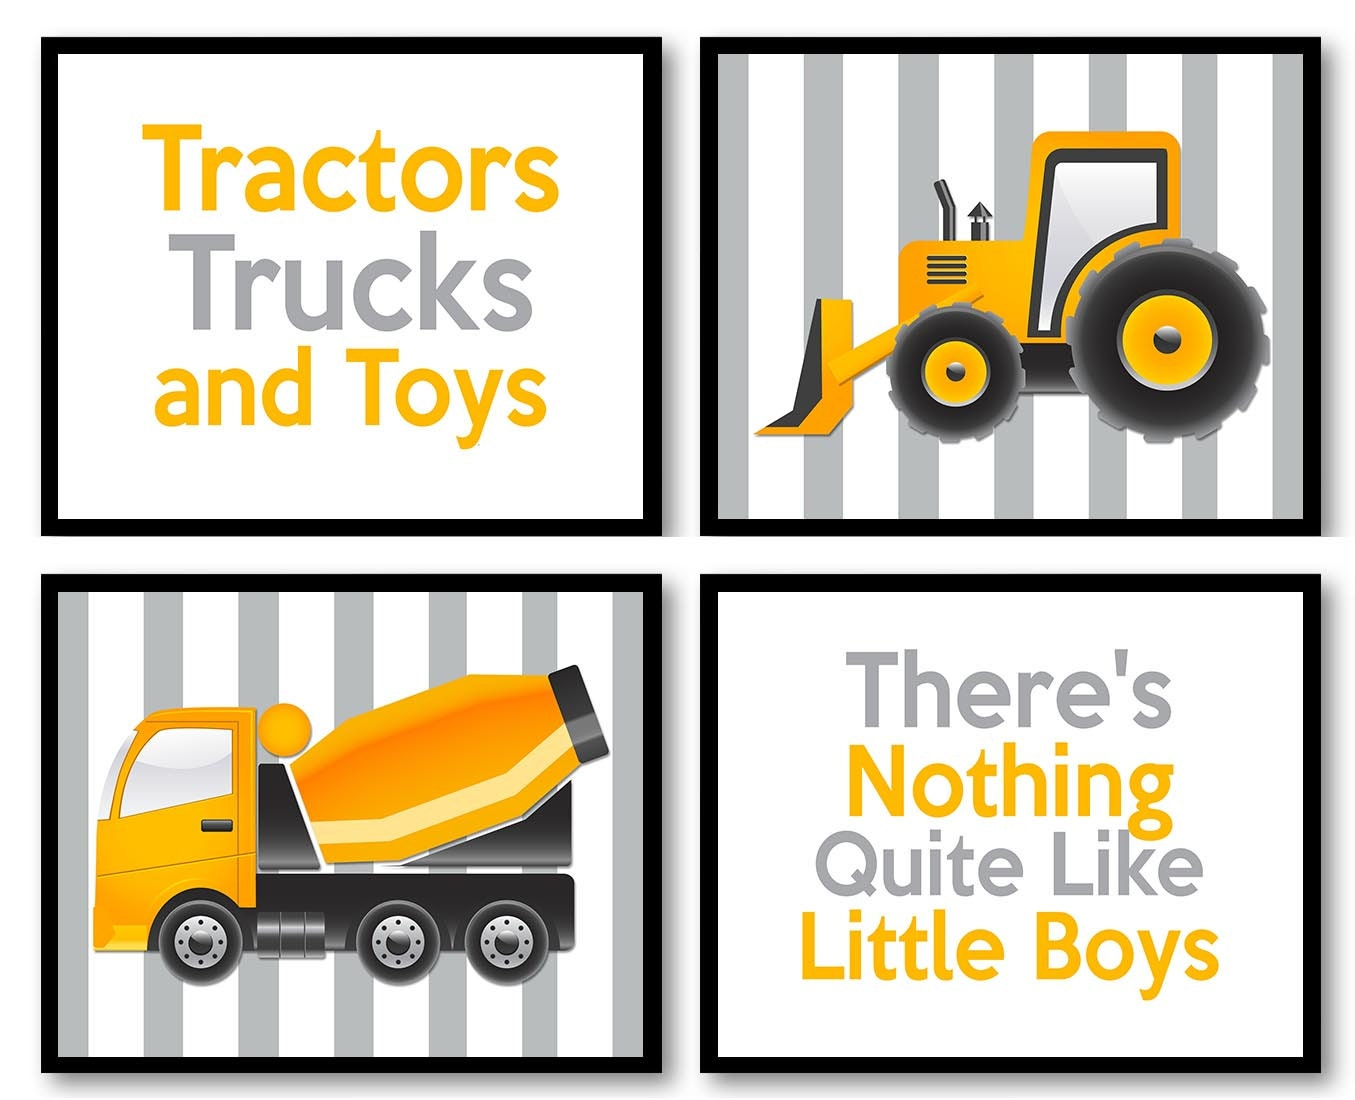 Tractor Truck Little Boys Transportation Construction Vehicles Heavy Machinery Set of 4 Prints Nurse